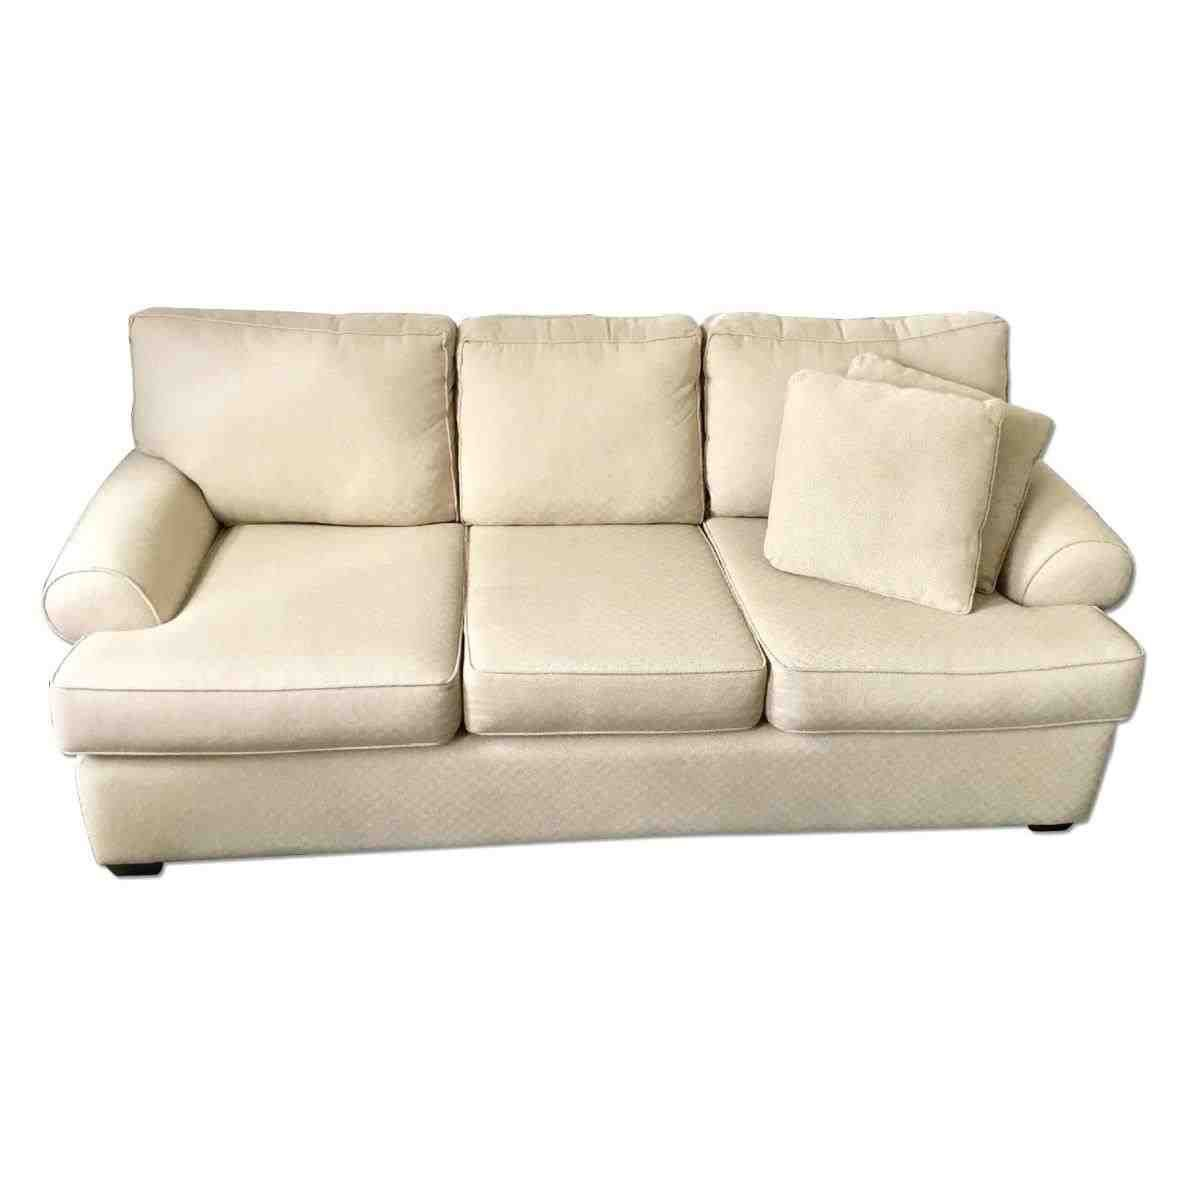 Best Cheap Sectionals For Sale Shabby Chic Furniture Diy 400 x 300